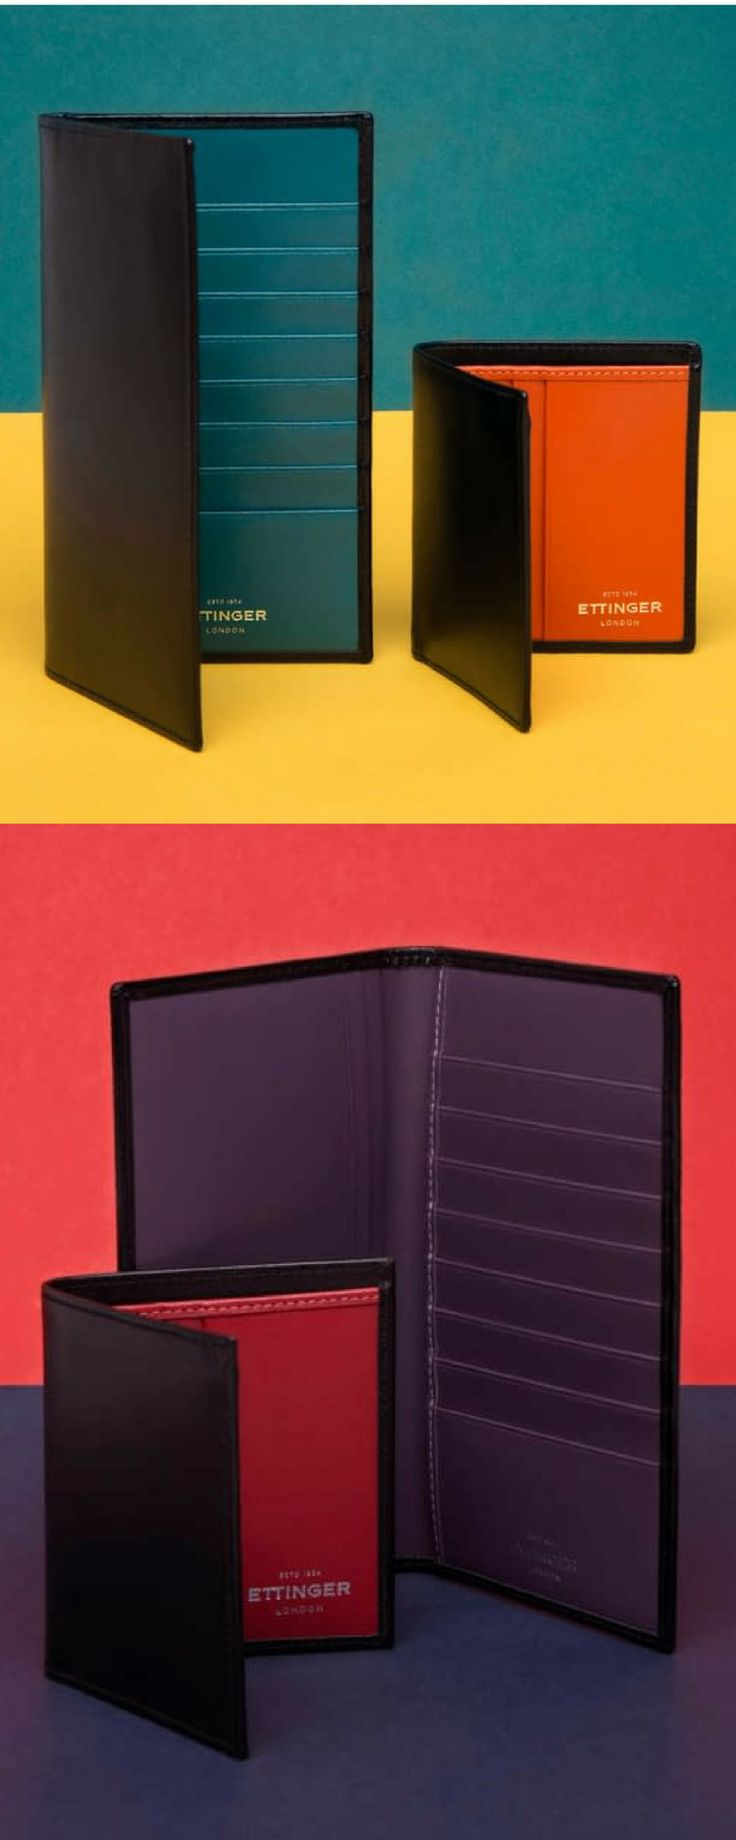 The Sterling Collection of wallets offers a striking array of interior hues inspired by the regal colours of the British banknotes. Handmade in England, Ettinger's iconic leather wallets are a celebration of the best of British style: elegance with a touch of eccentricity. Shop Ettinger at betty hemmings online or in our Yorkville, Toronto store.